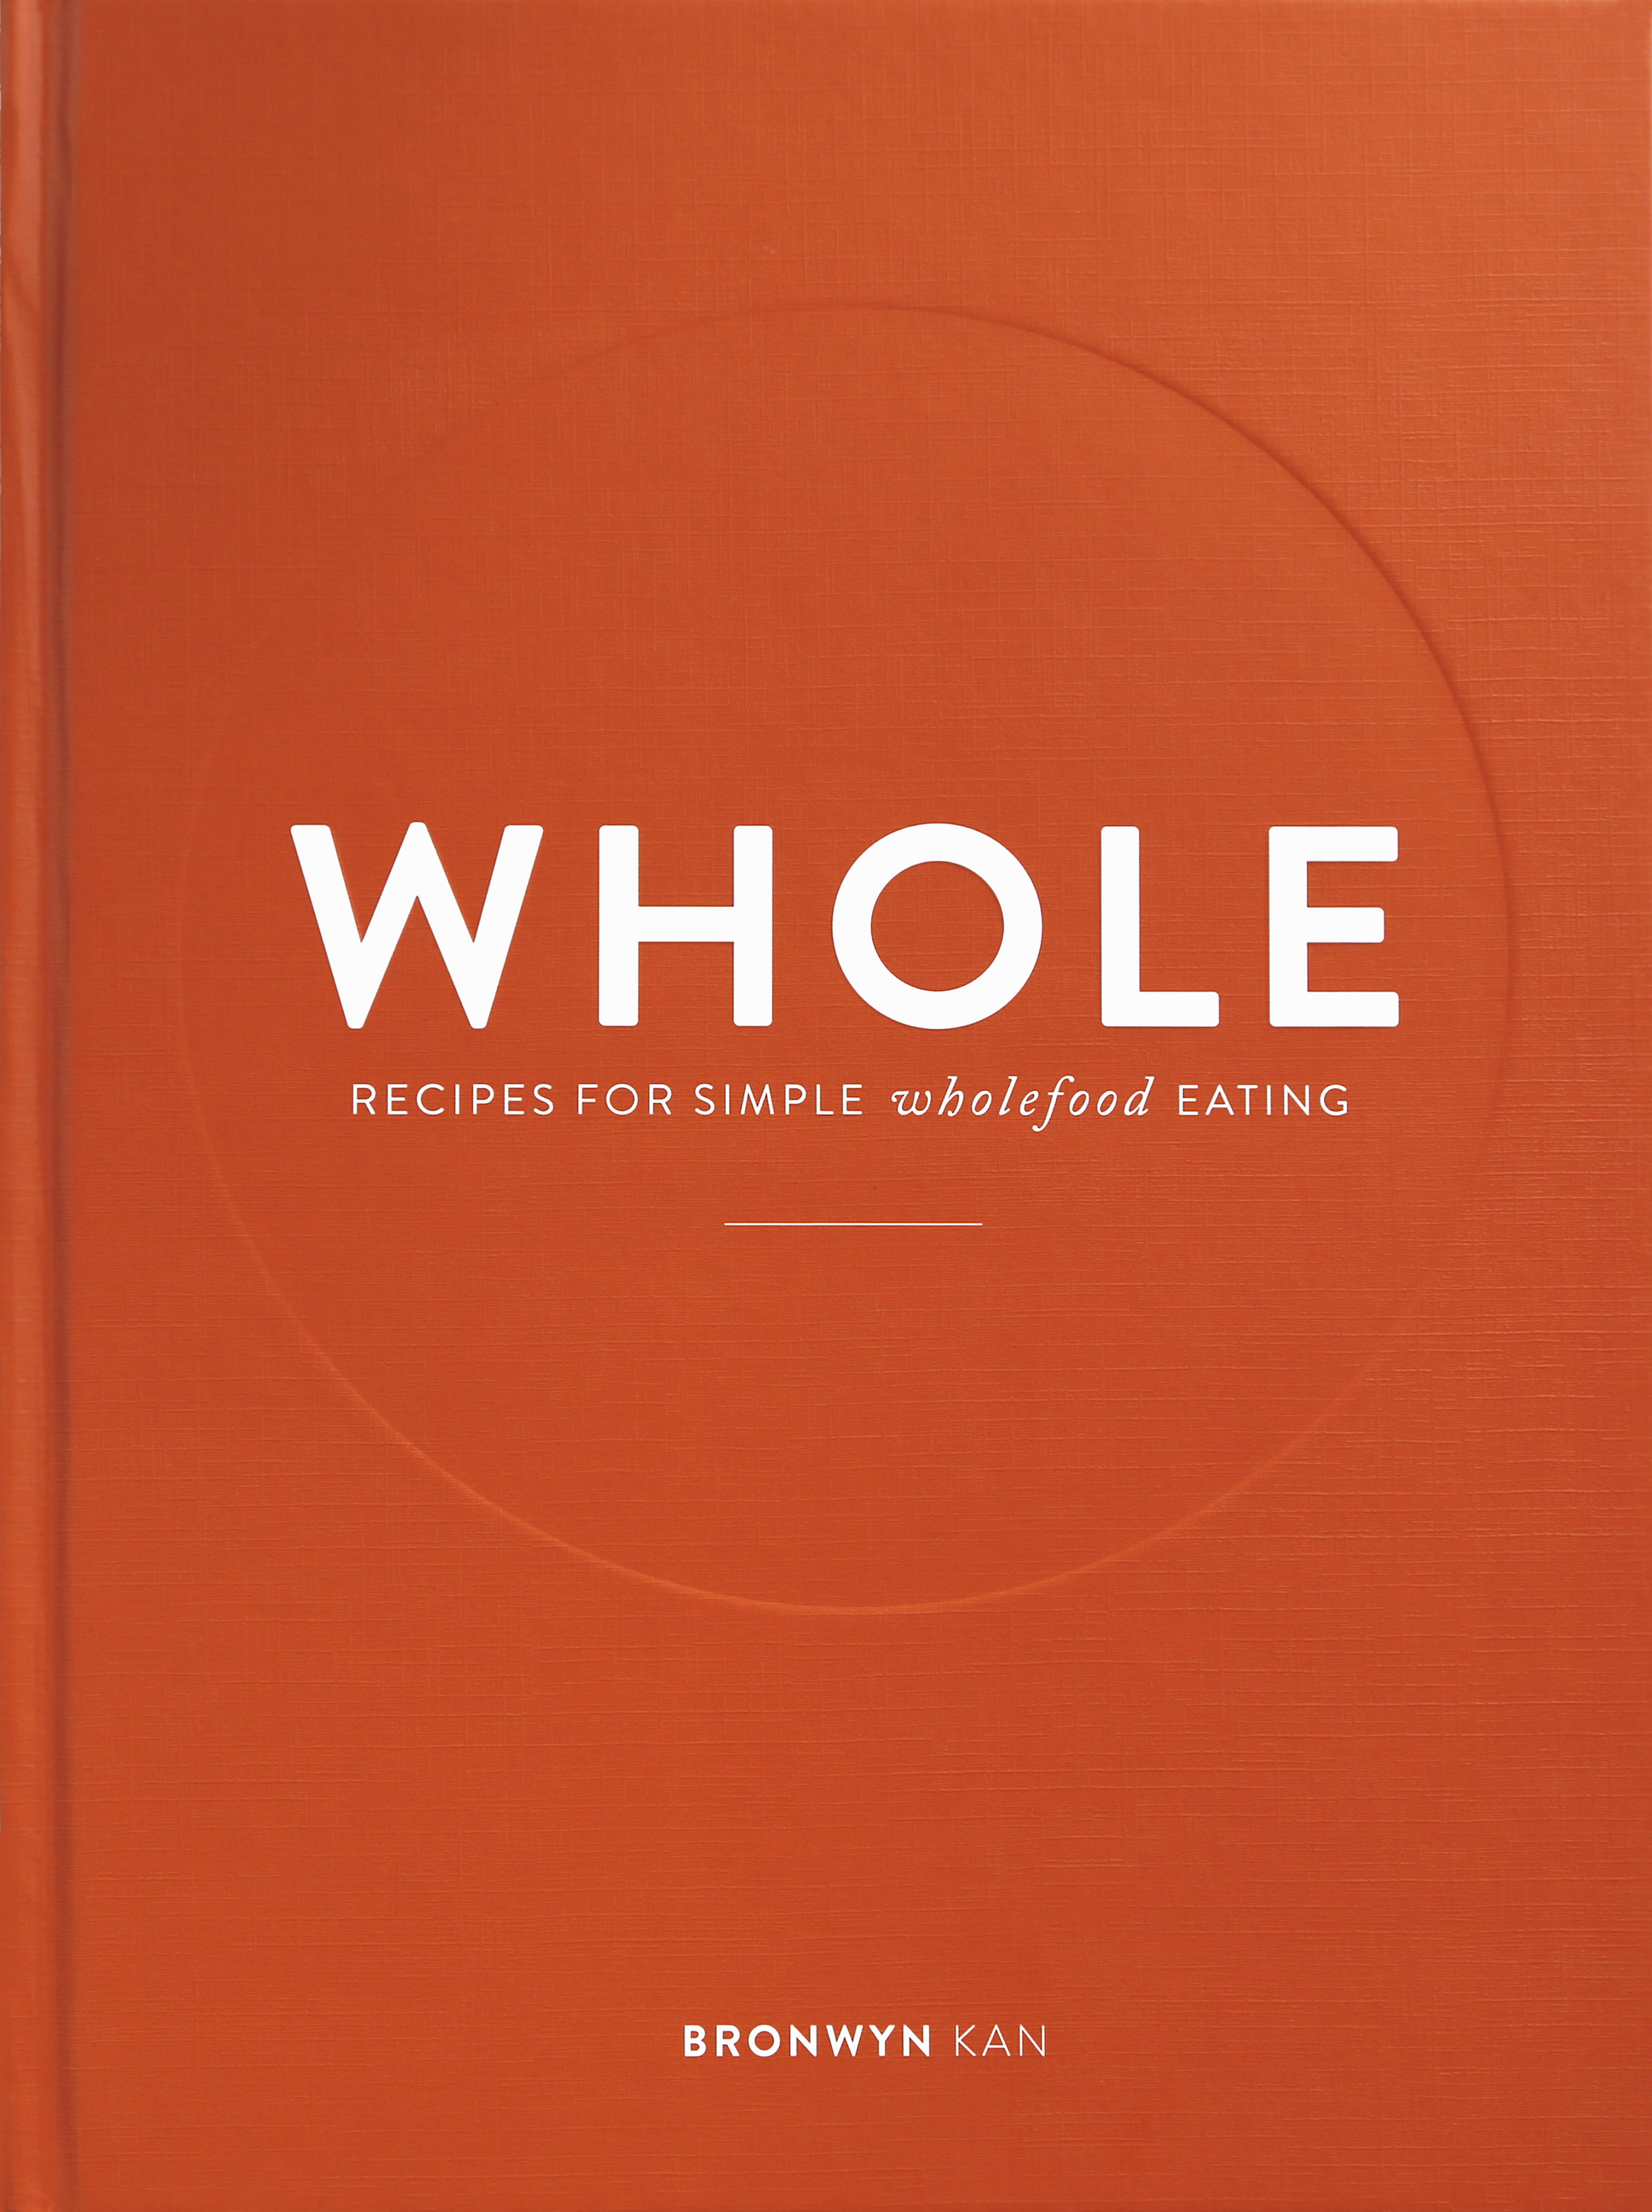 Book Cover Design Nz : Whole — printing award for best cookbook